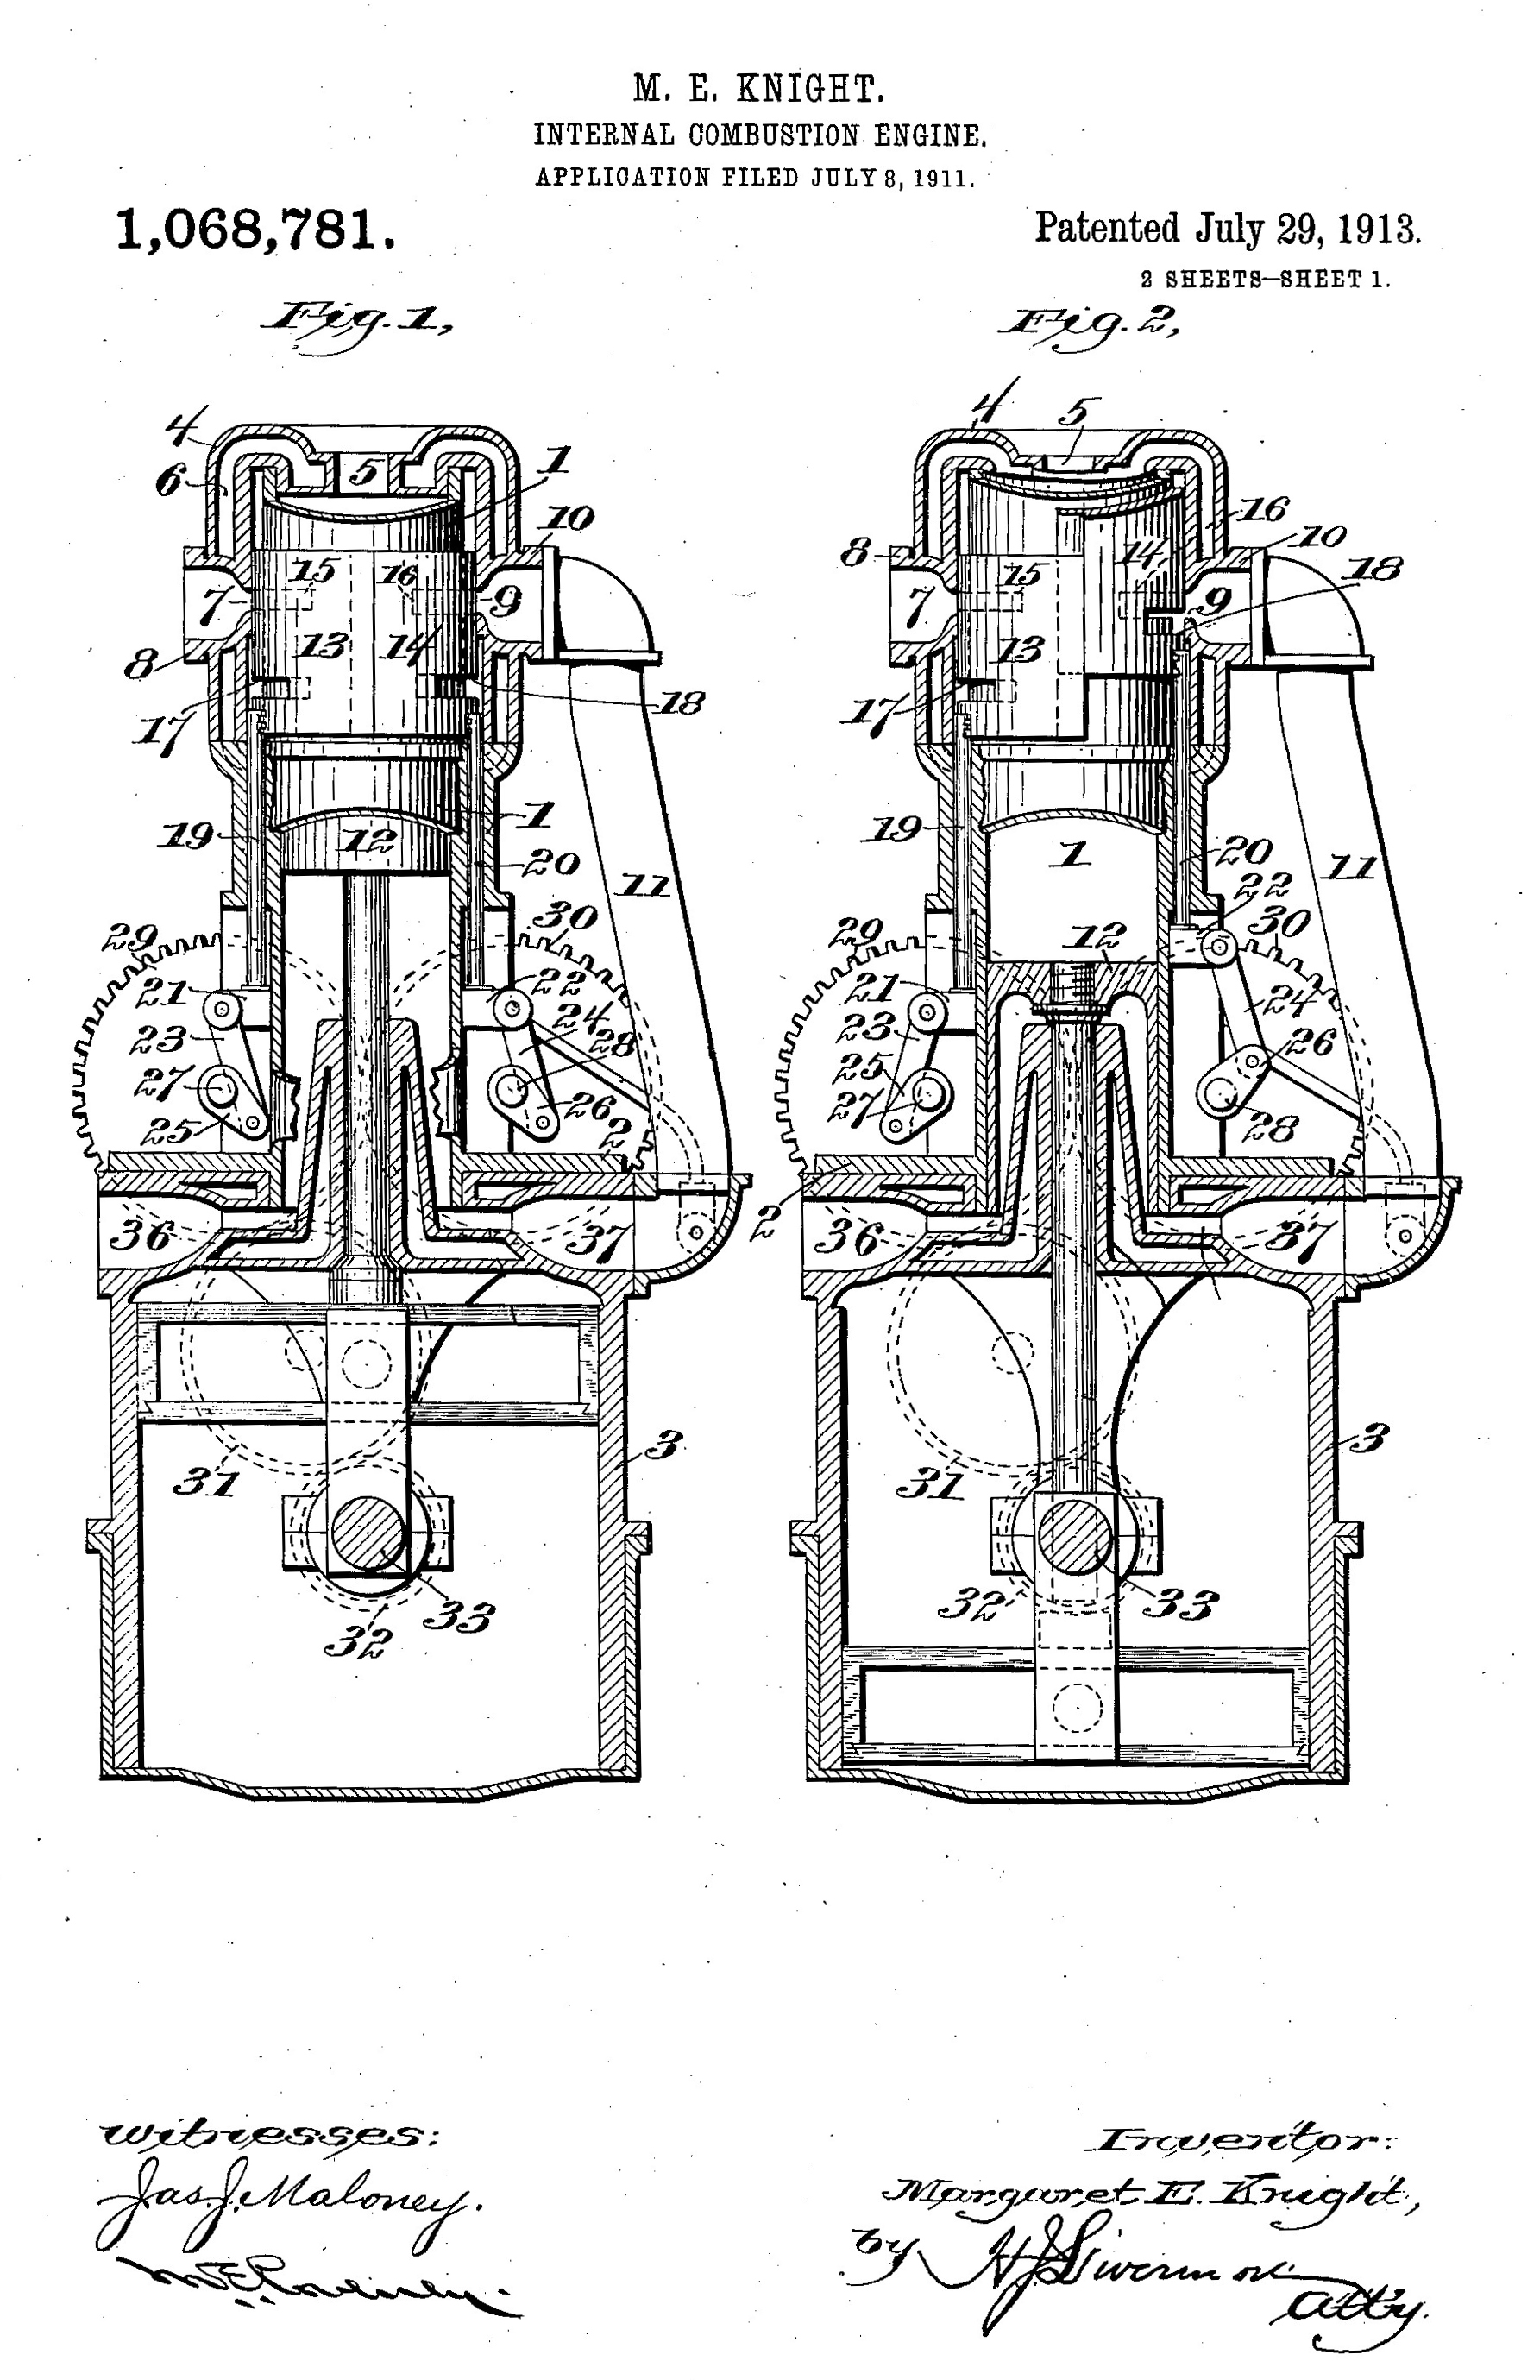 File:US1068781-Internal combustion engine (2).jpg